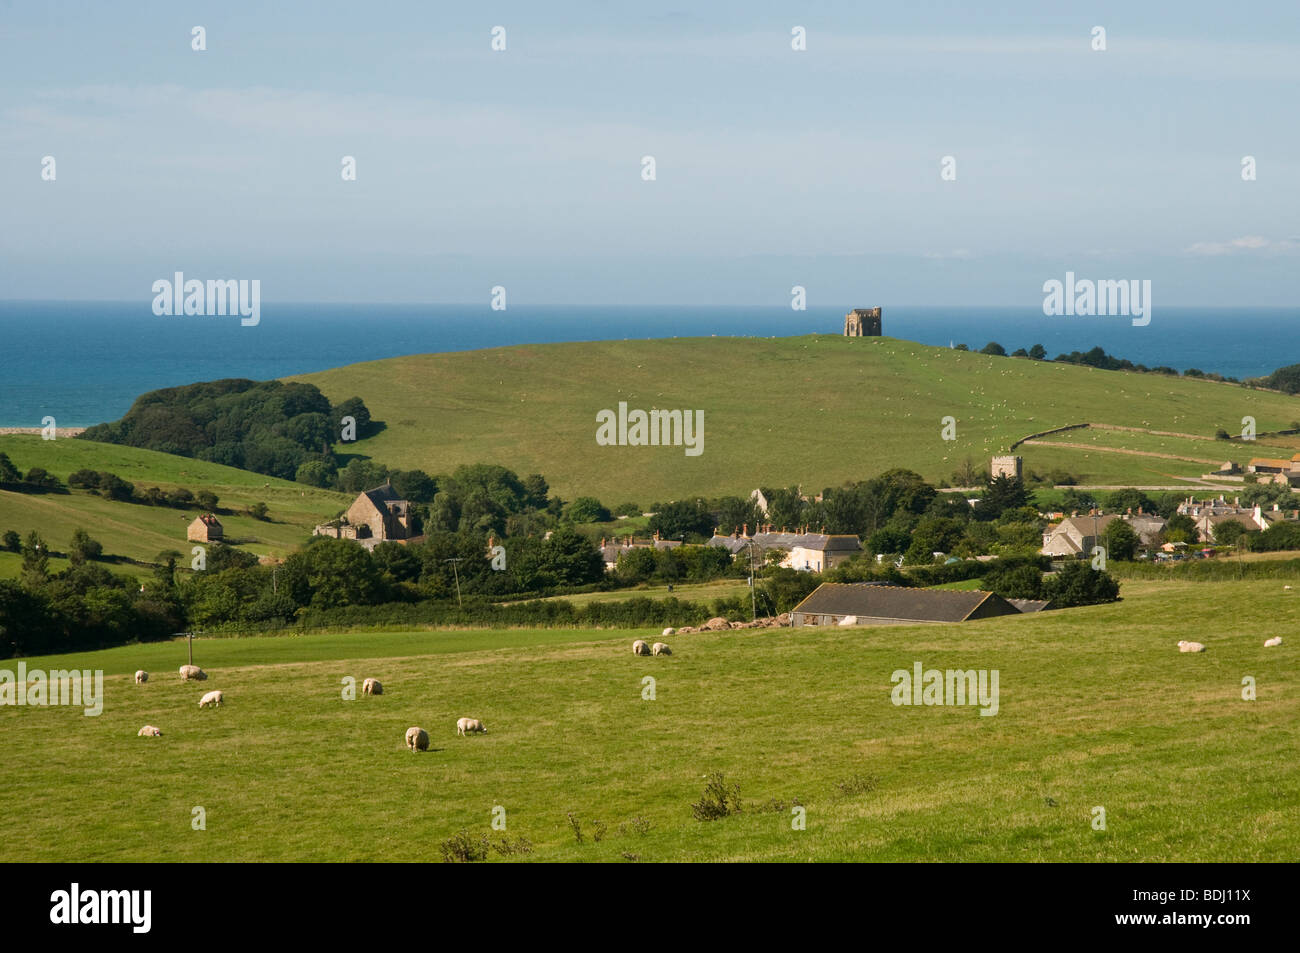 Beautiful countryside & coast of Dorset, England.  Village of  Abbotsbury  below where there is a Swannery. - Stock Image